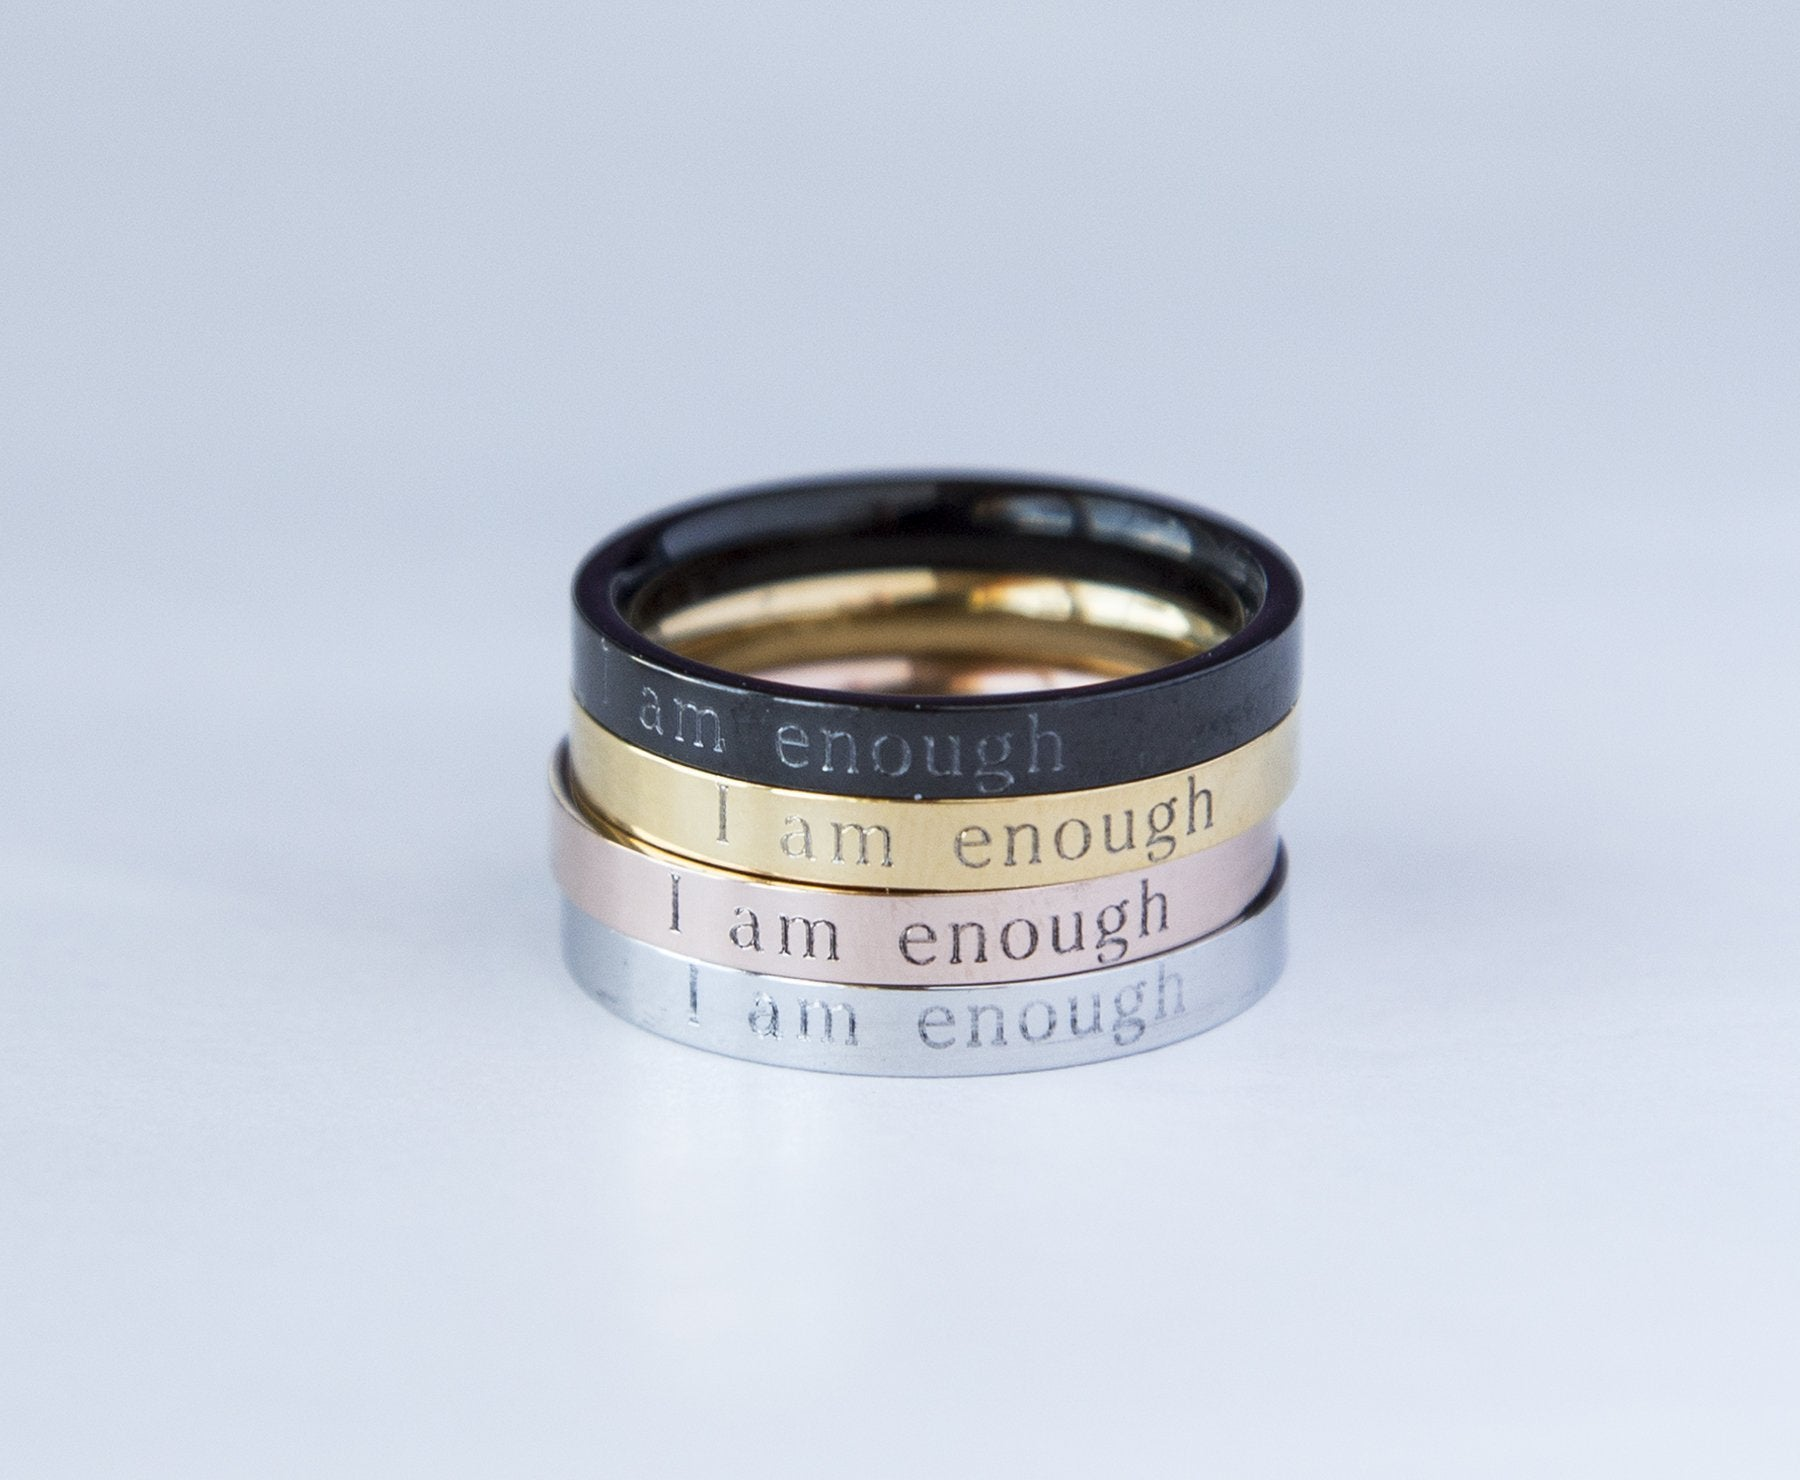 I Am Enough Personalized Engraved Ring - Studio Cosmica